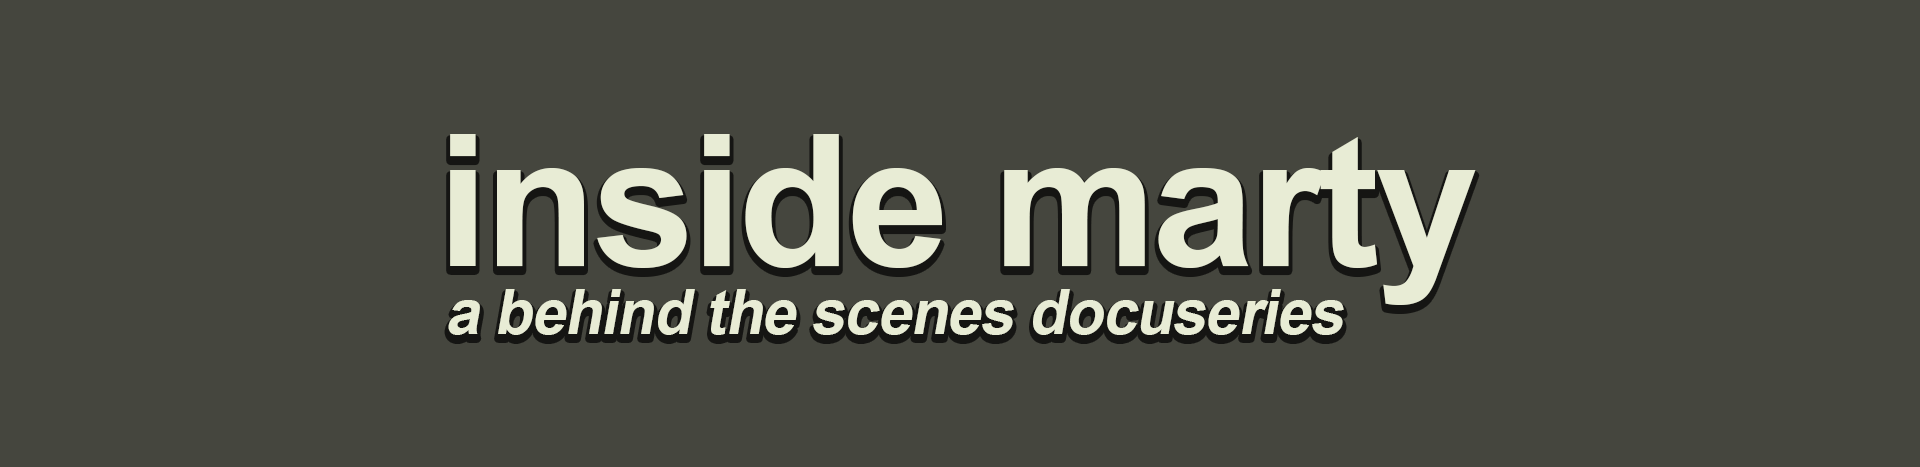 Show scenes page - Inside Marty Is A Behind The Scenes Docuseries That Shows The Creation Of Marty S Internet Show Every Episode Has Bloopers Deleted Scenes And Filming